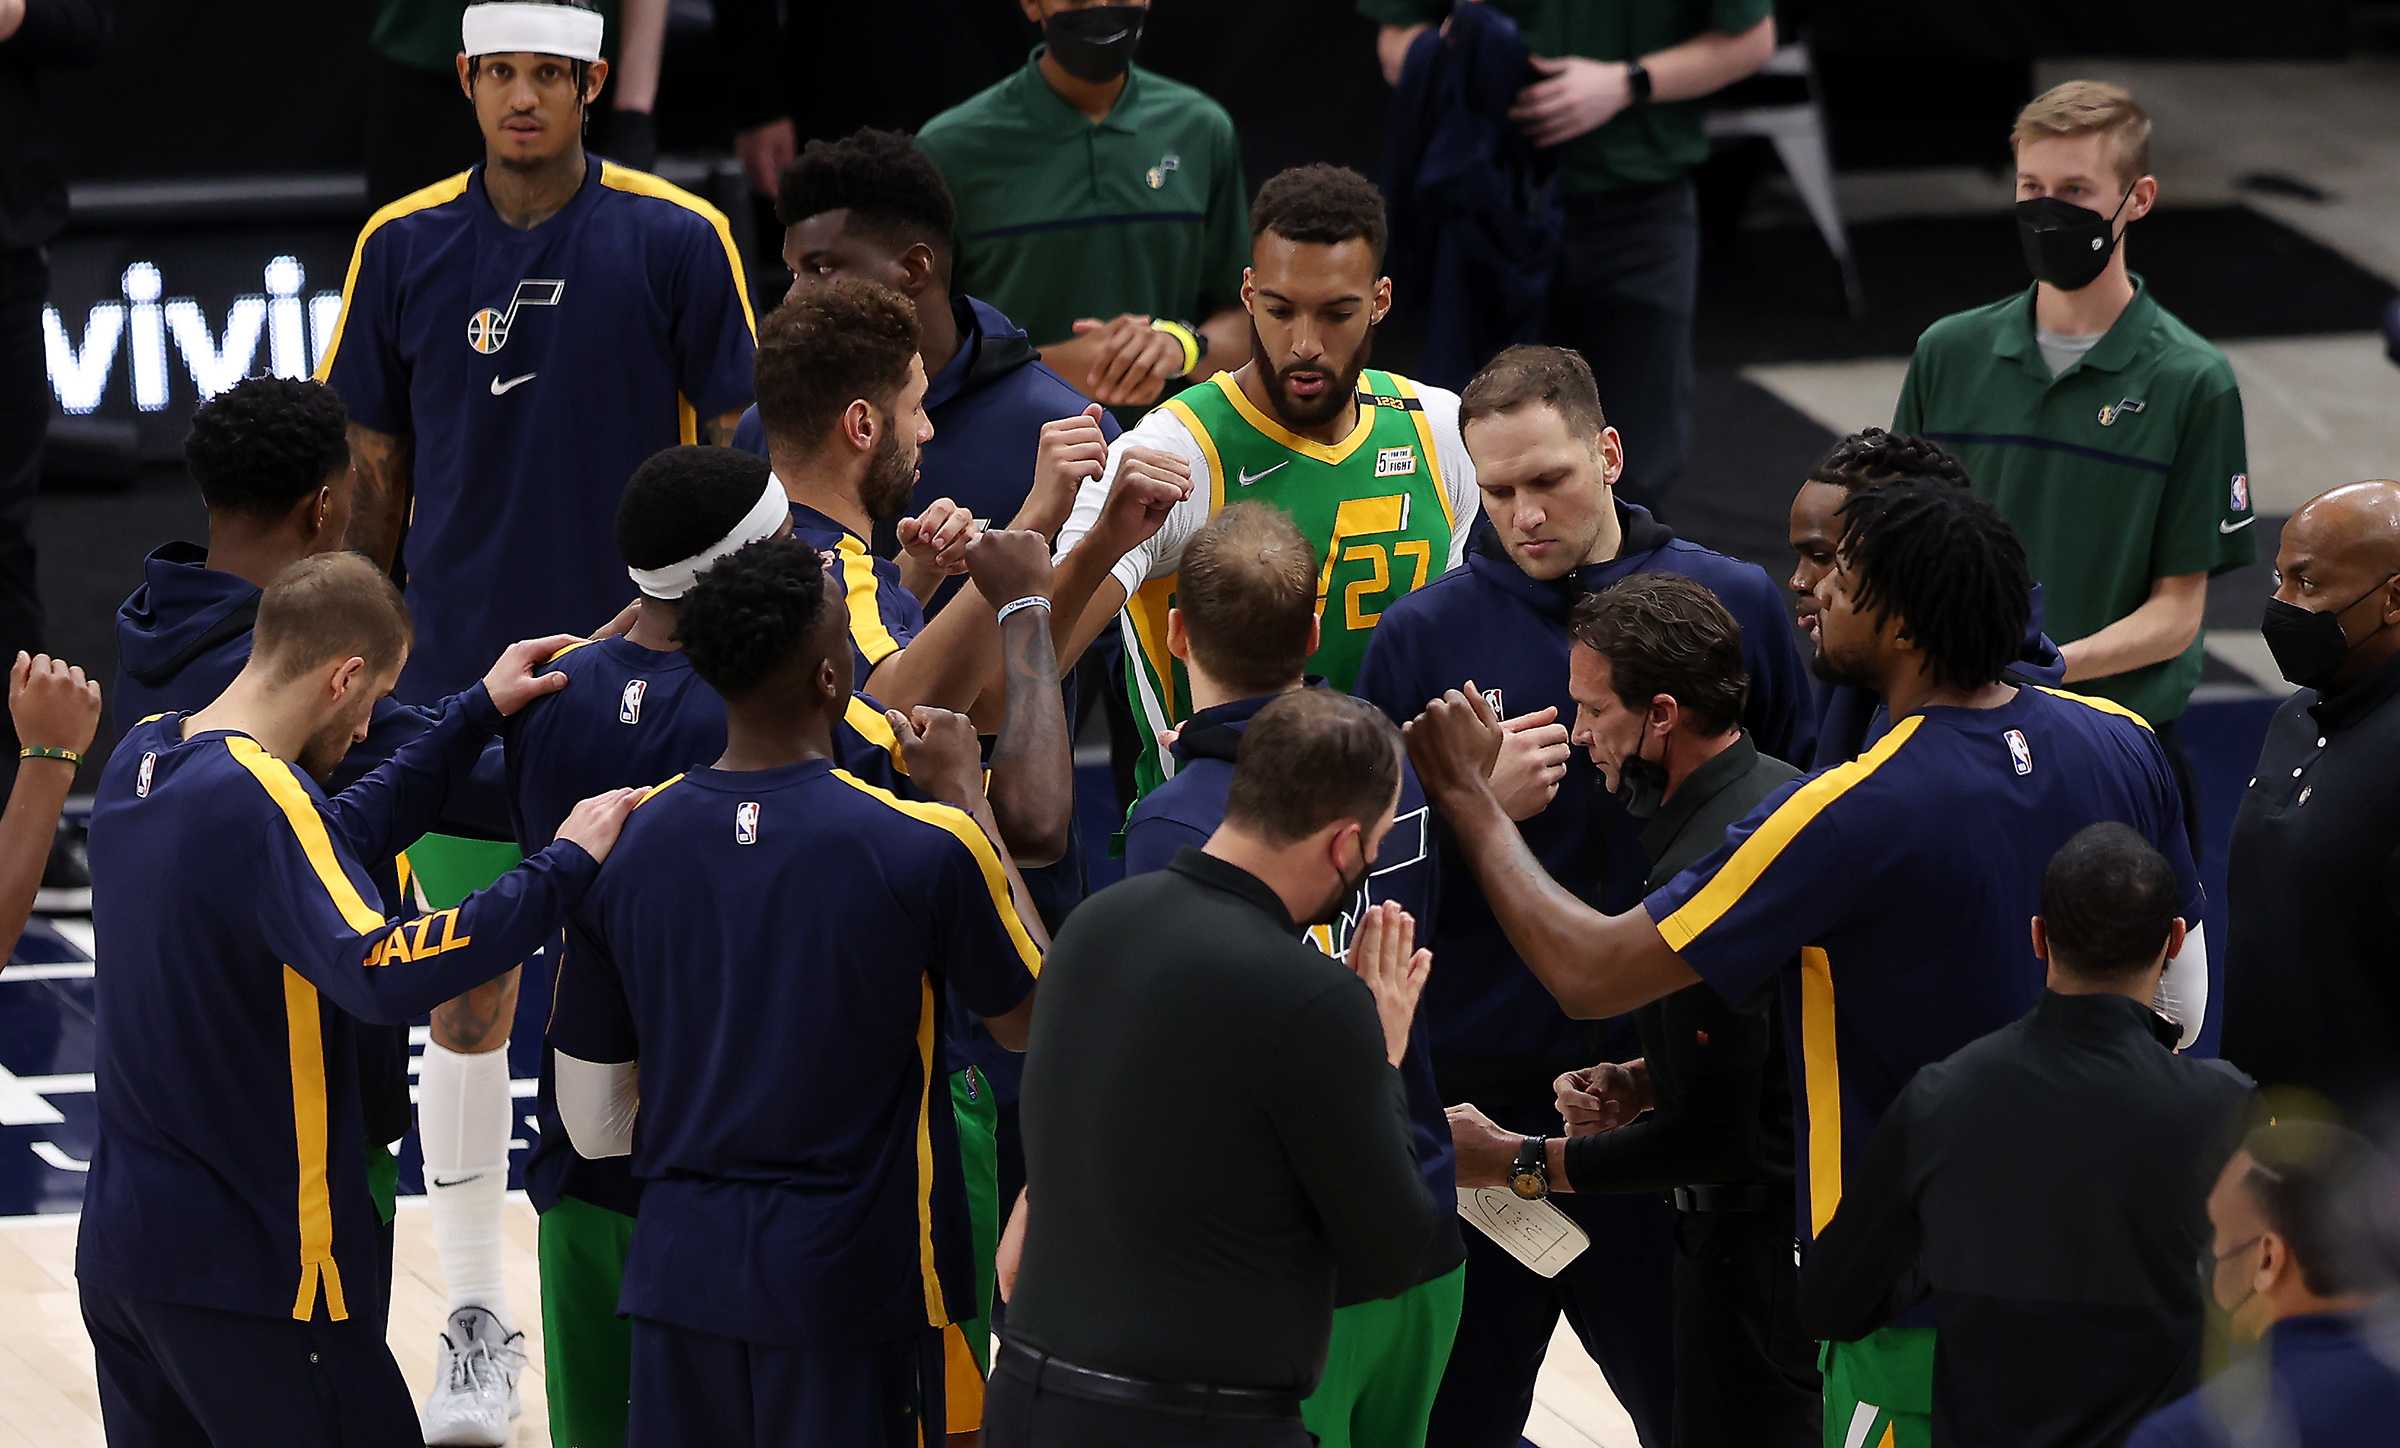 Utah Jazz head coach Quin Snyder talks with his team in a huddle